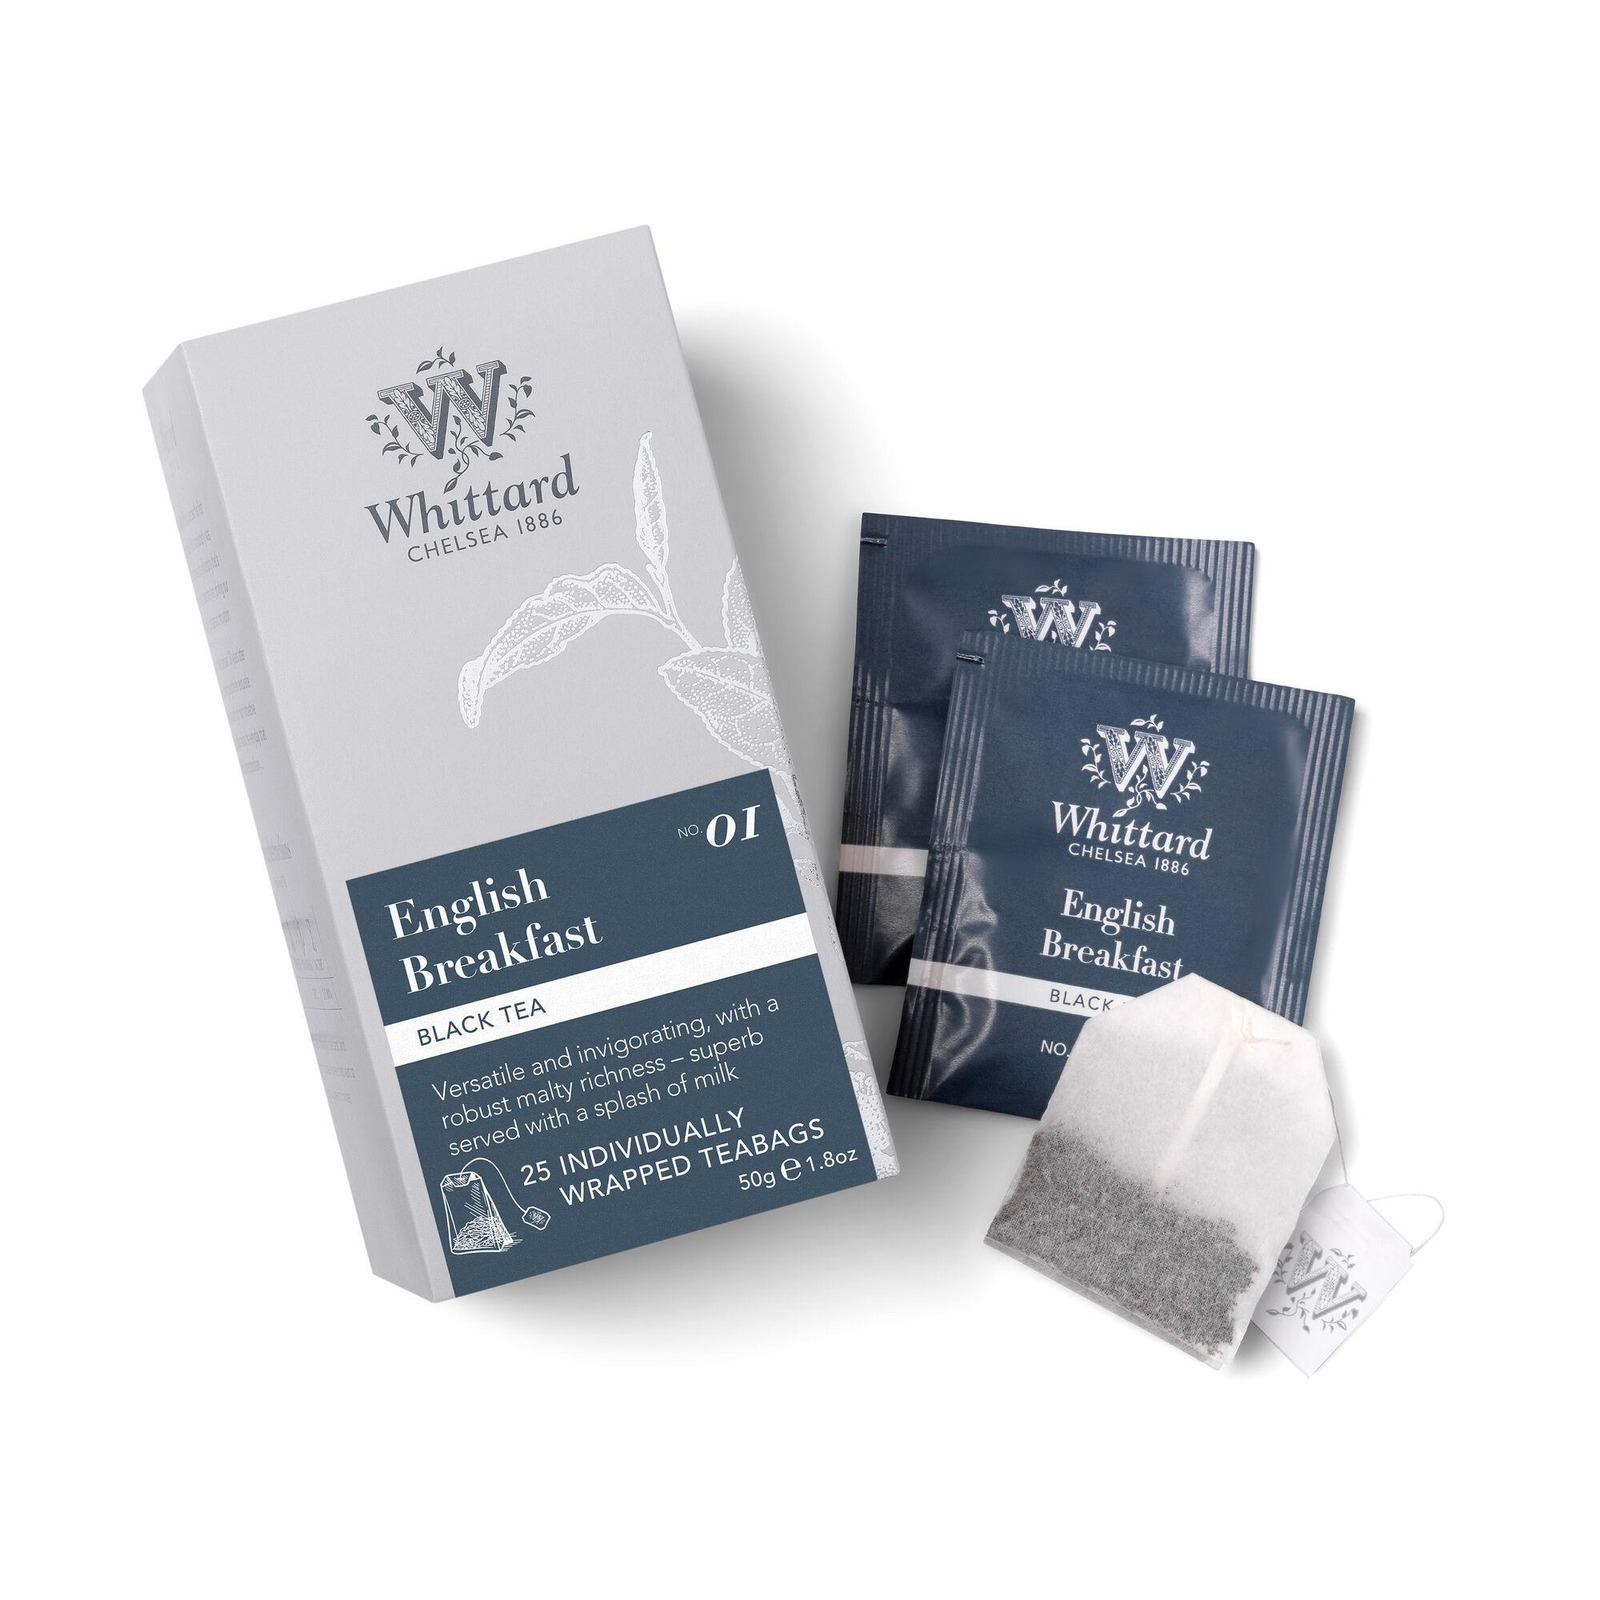 Whittard English Breakfast 25 Individually Wrapped Teabags